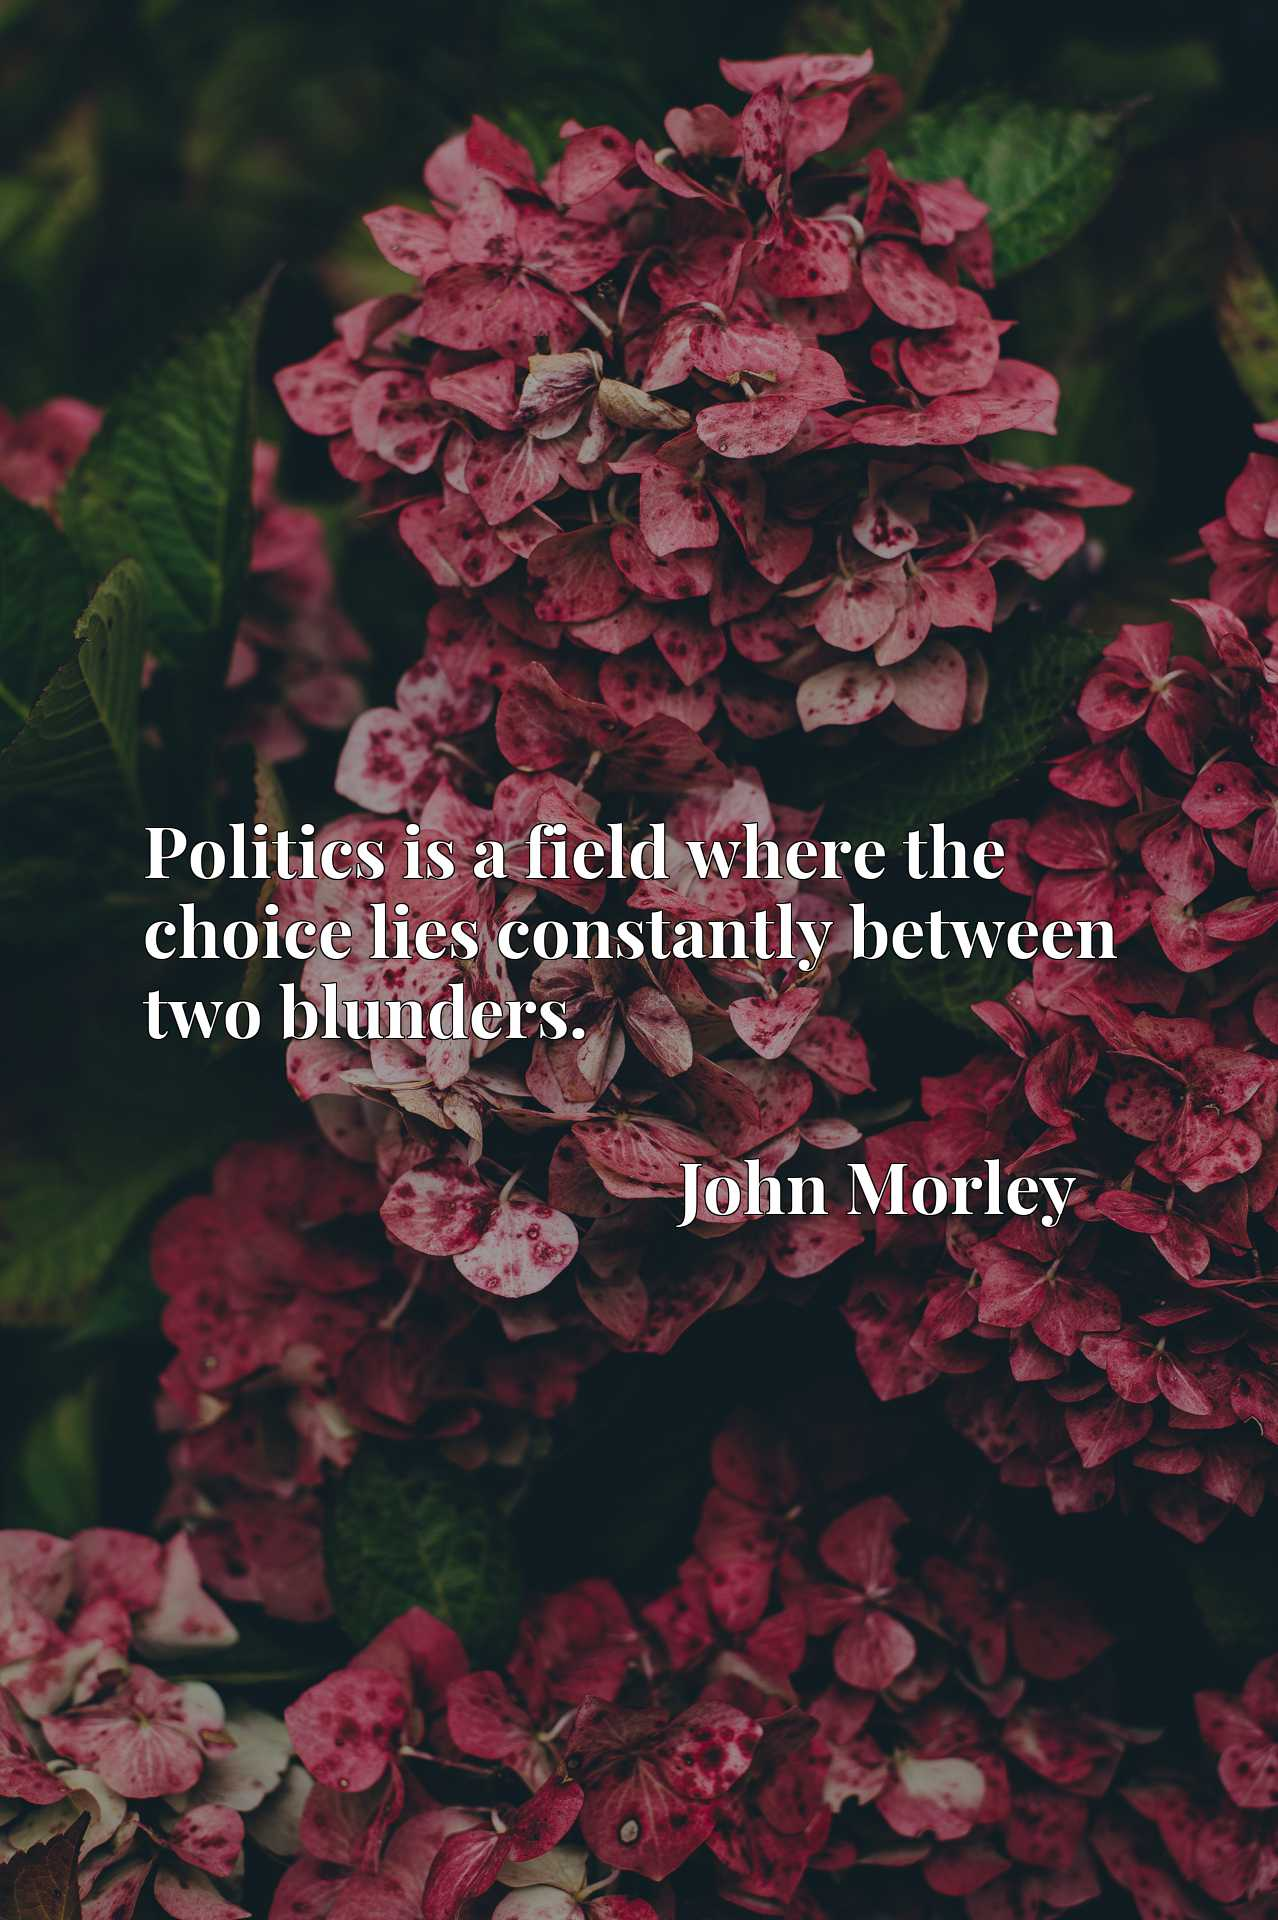 Politics is a field where the choice lies constantly between two blunders.